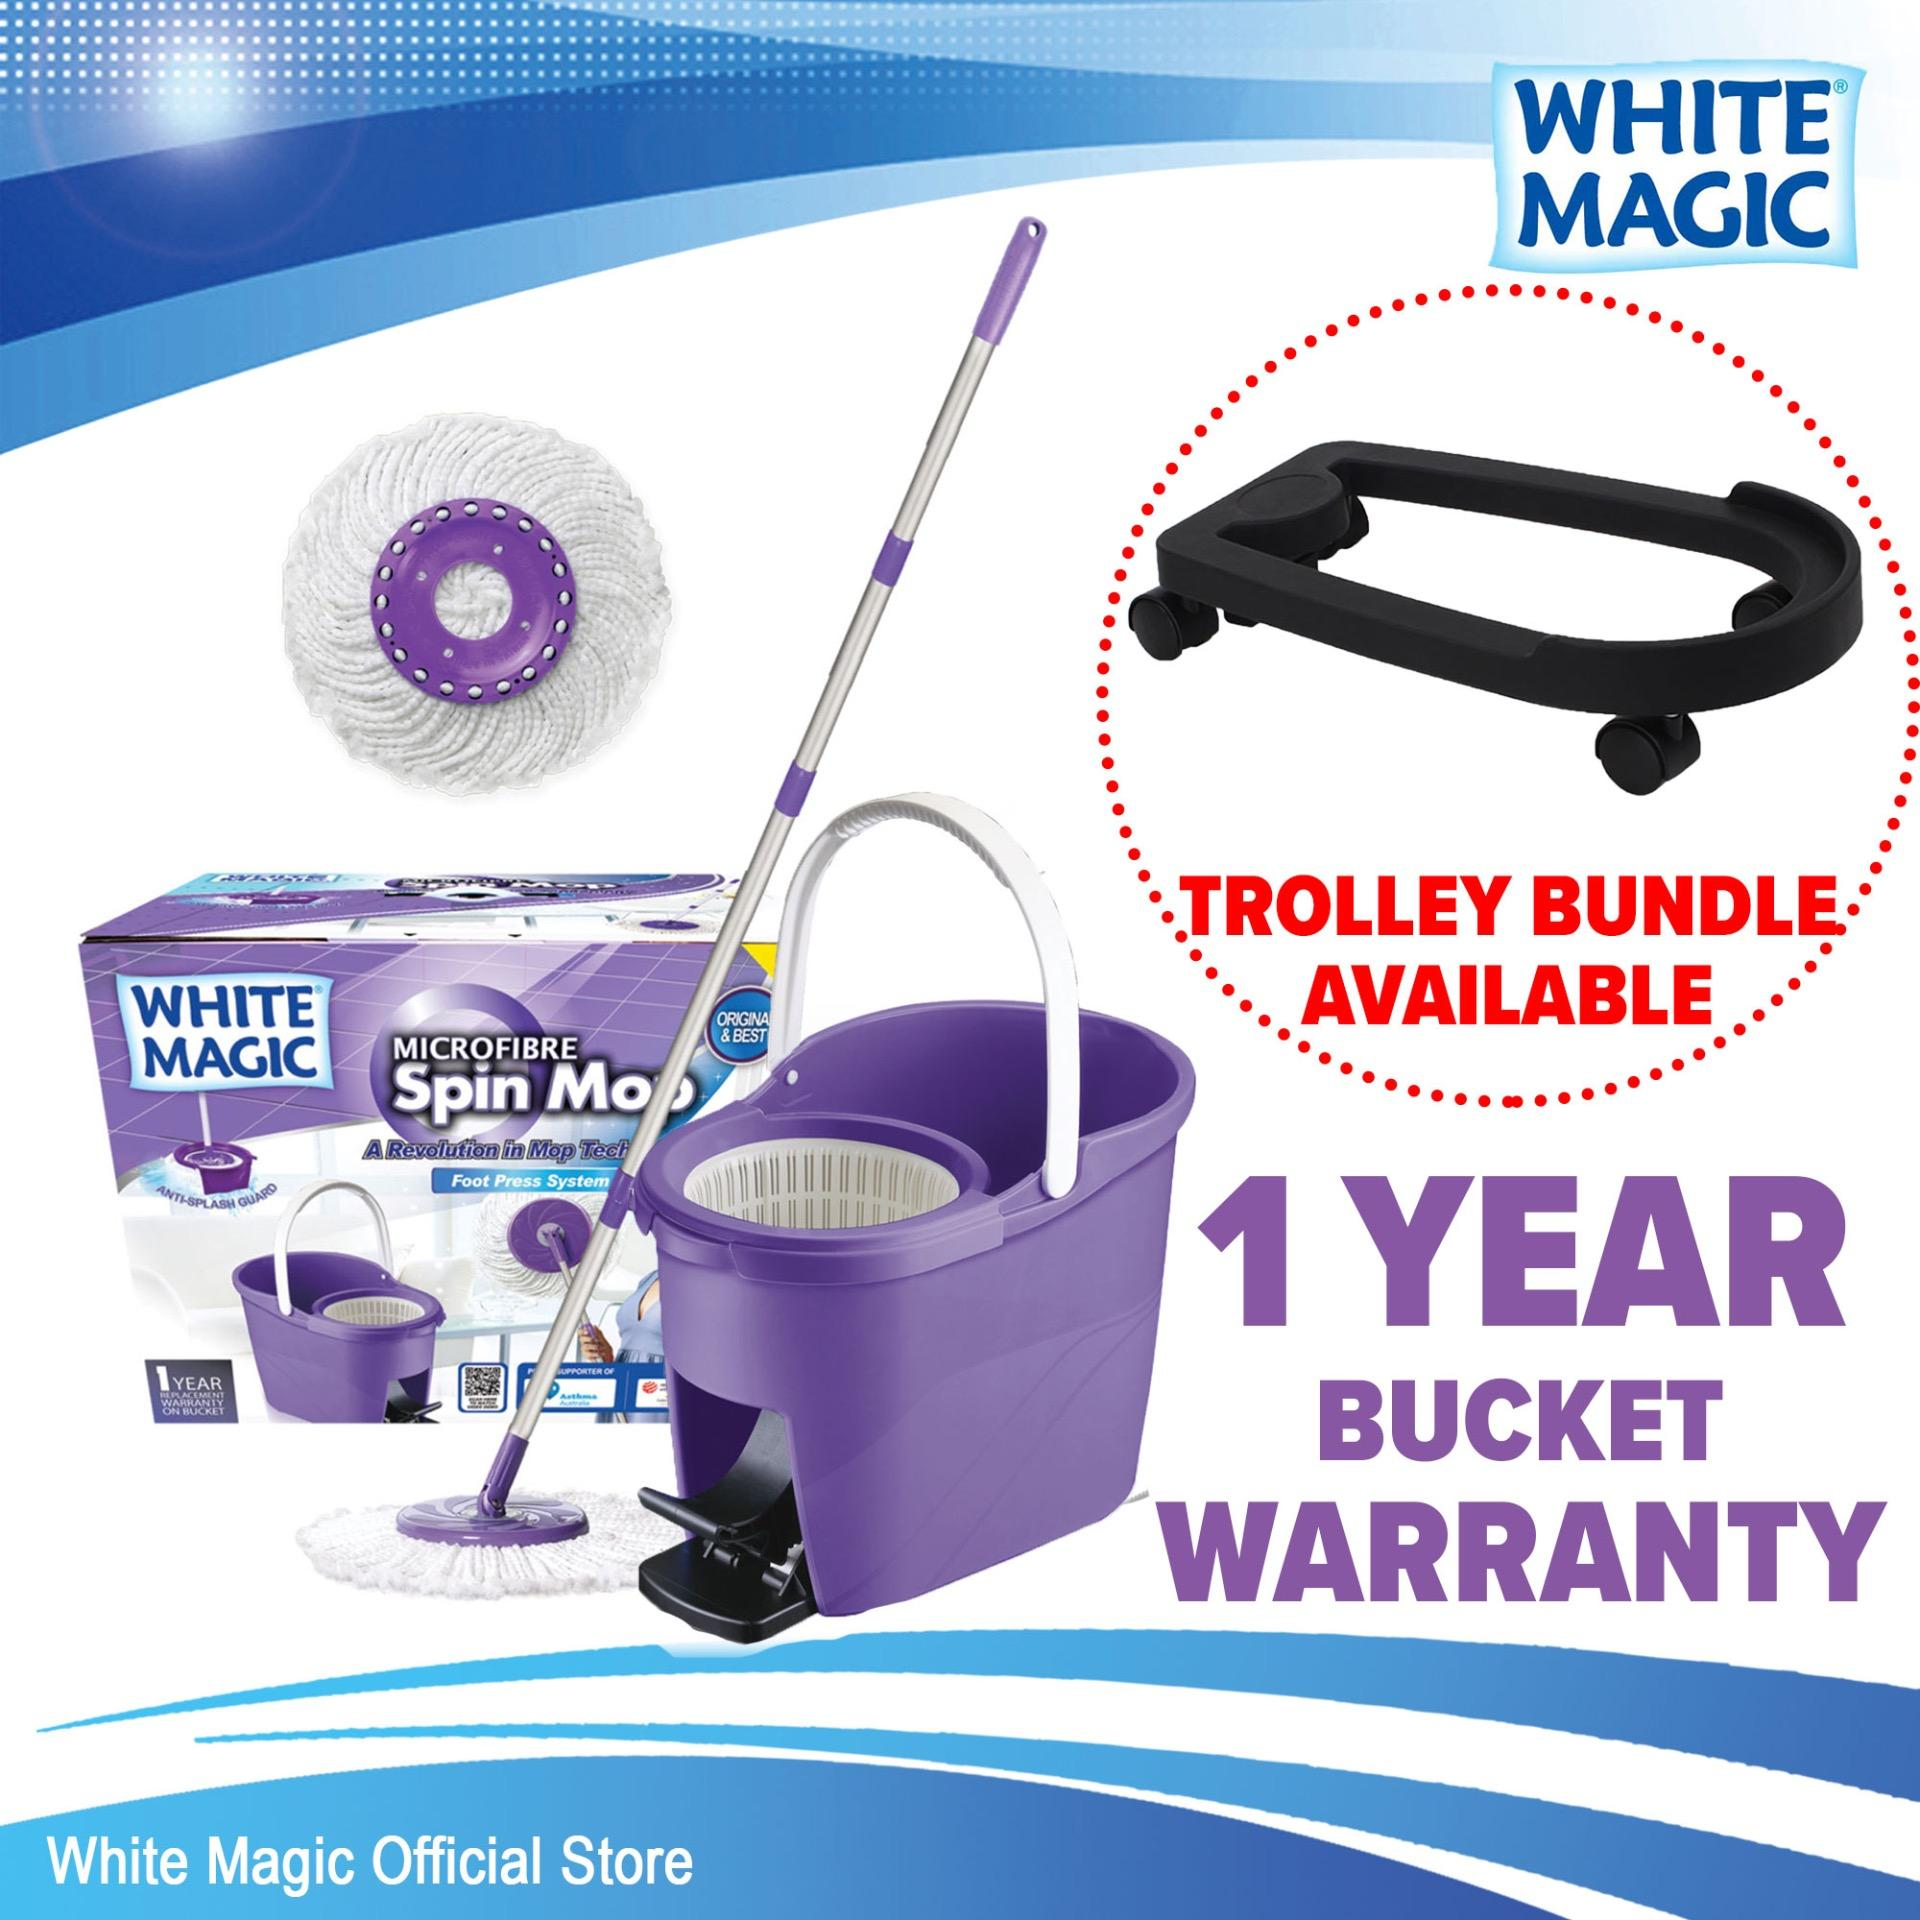 White Magic Foot Press Spin Mop Set (with 2 Free Mop Heads) / Trolley Bundle (add-On Available) / 1 Year Bucket Warranty By White Magic Official Store.